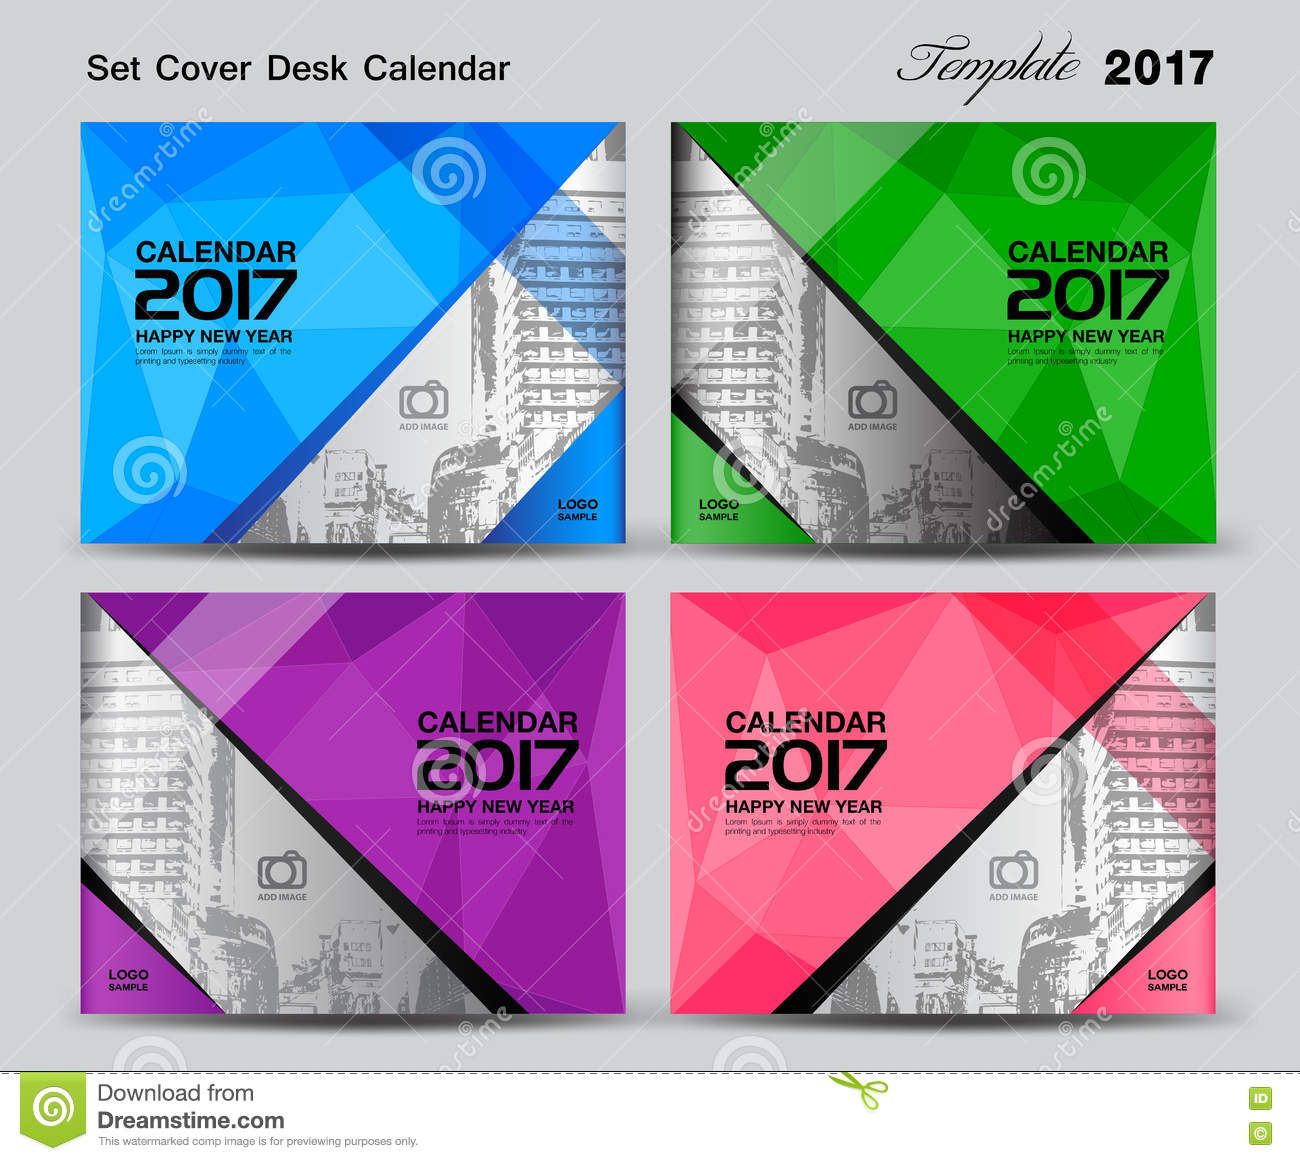 Calendar Cover Design 2014 : Set cover desk calendar year template design